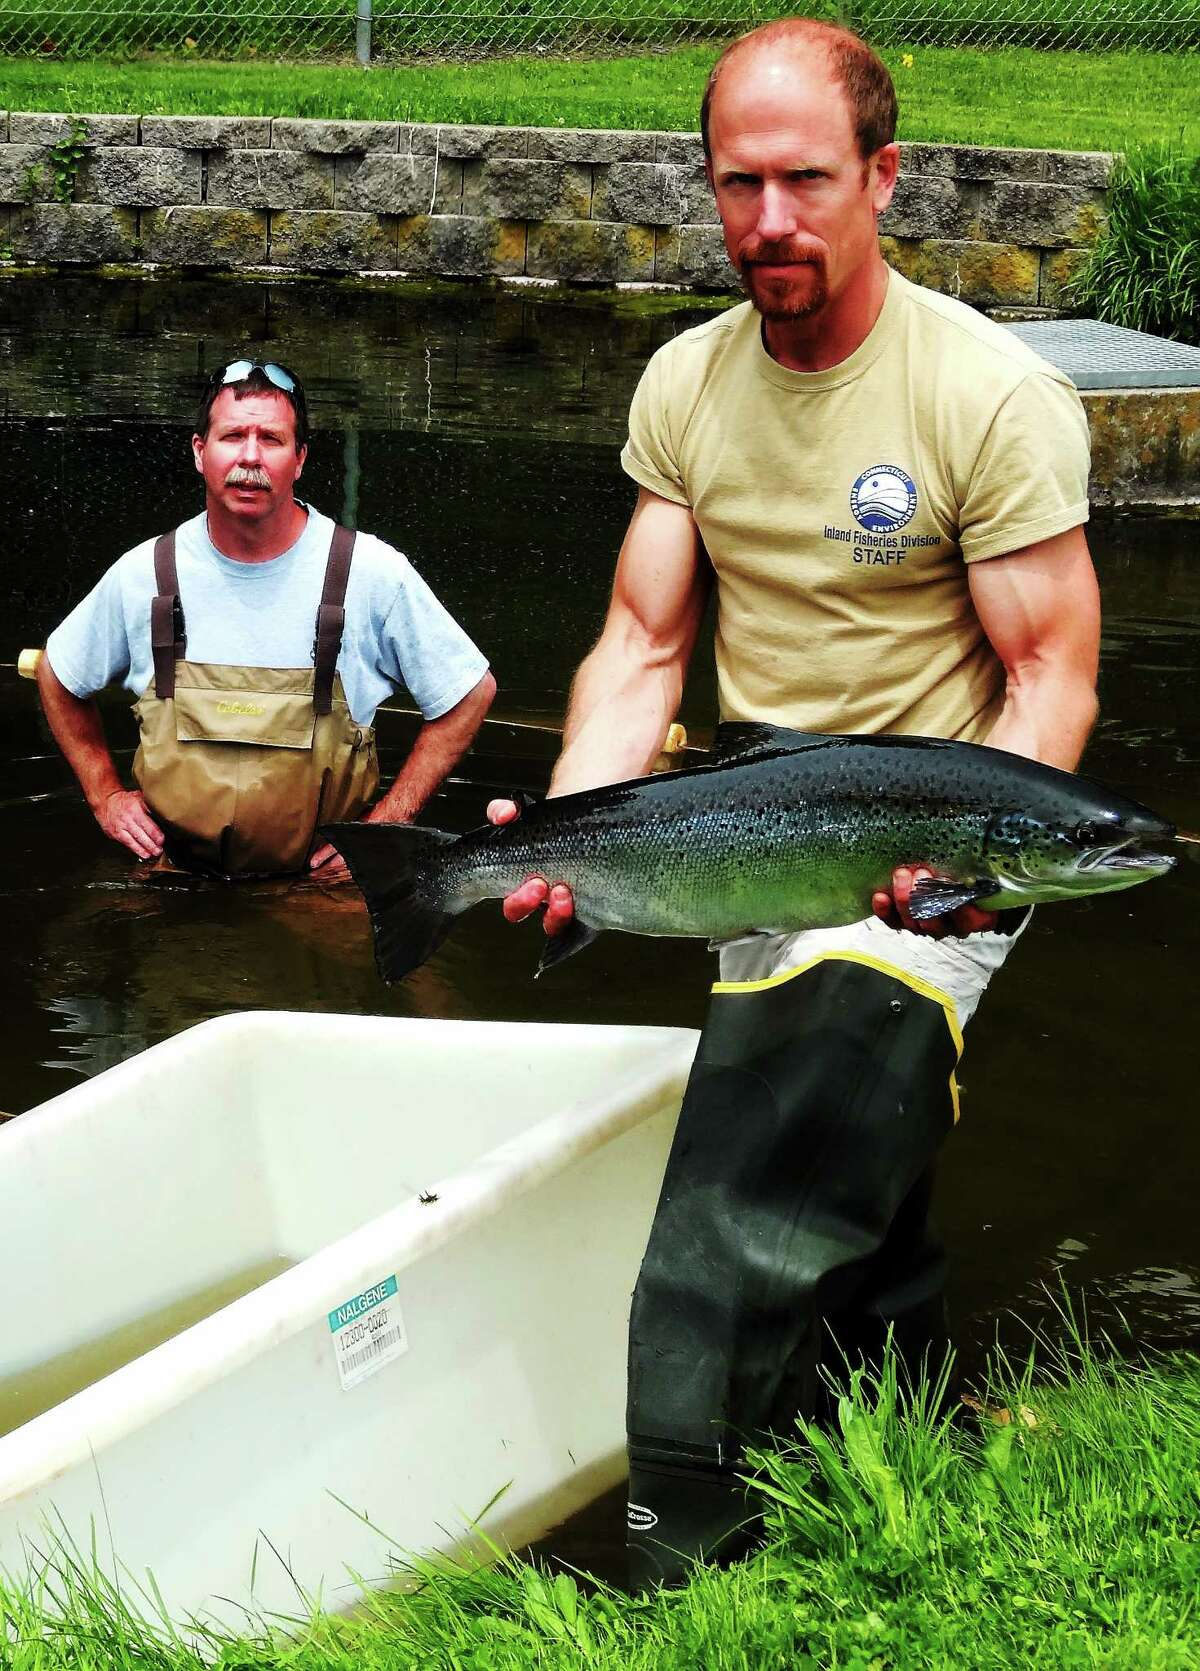 Tommy Fitzgerald (with salmon in hand) and Rick Napierski are shown at the State DEEP Kensington Hatchery in Berlin.